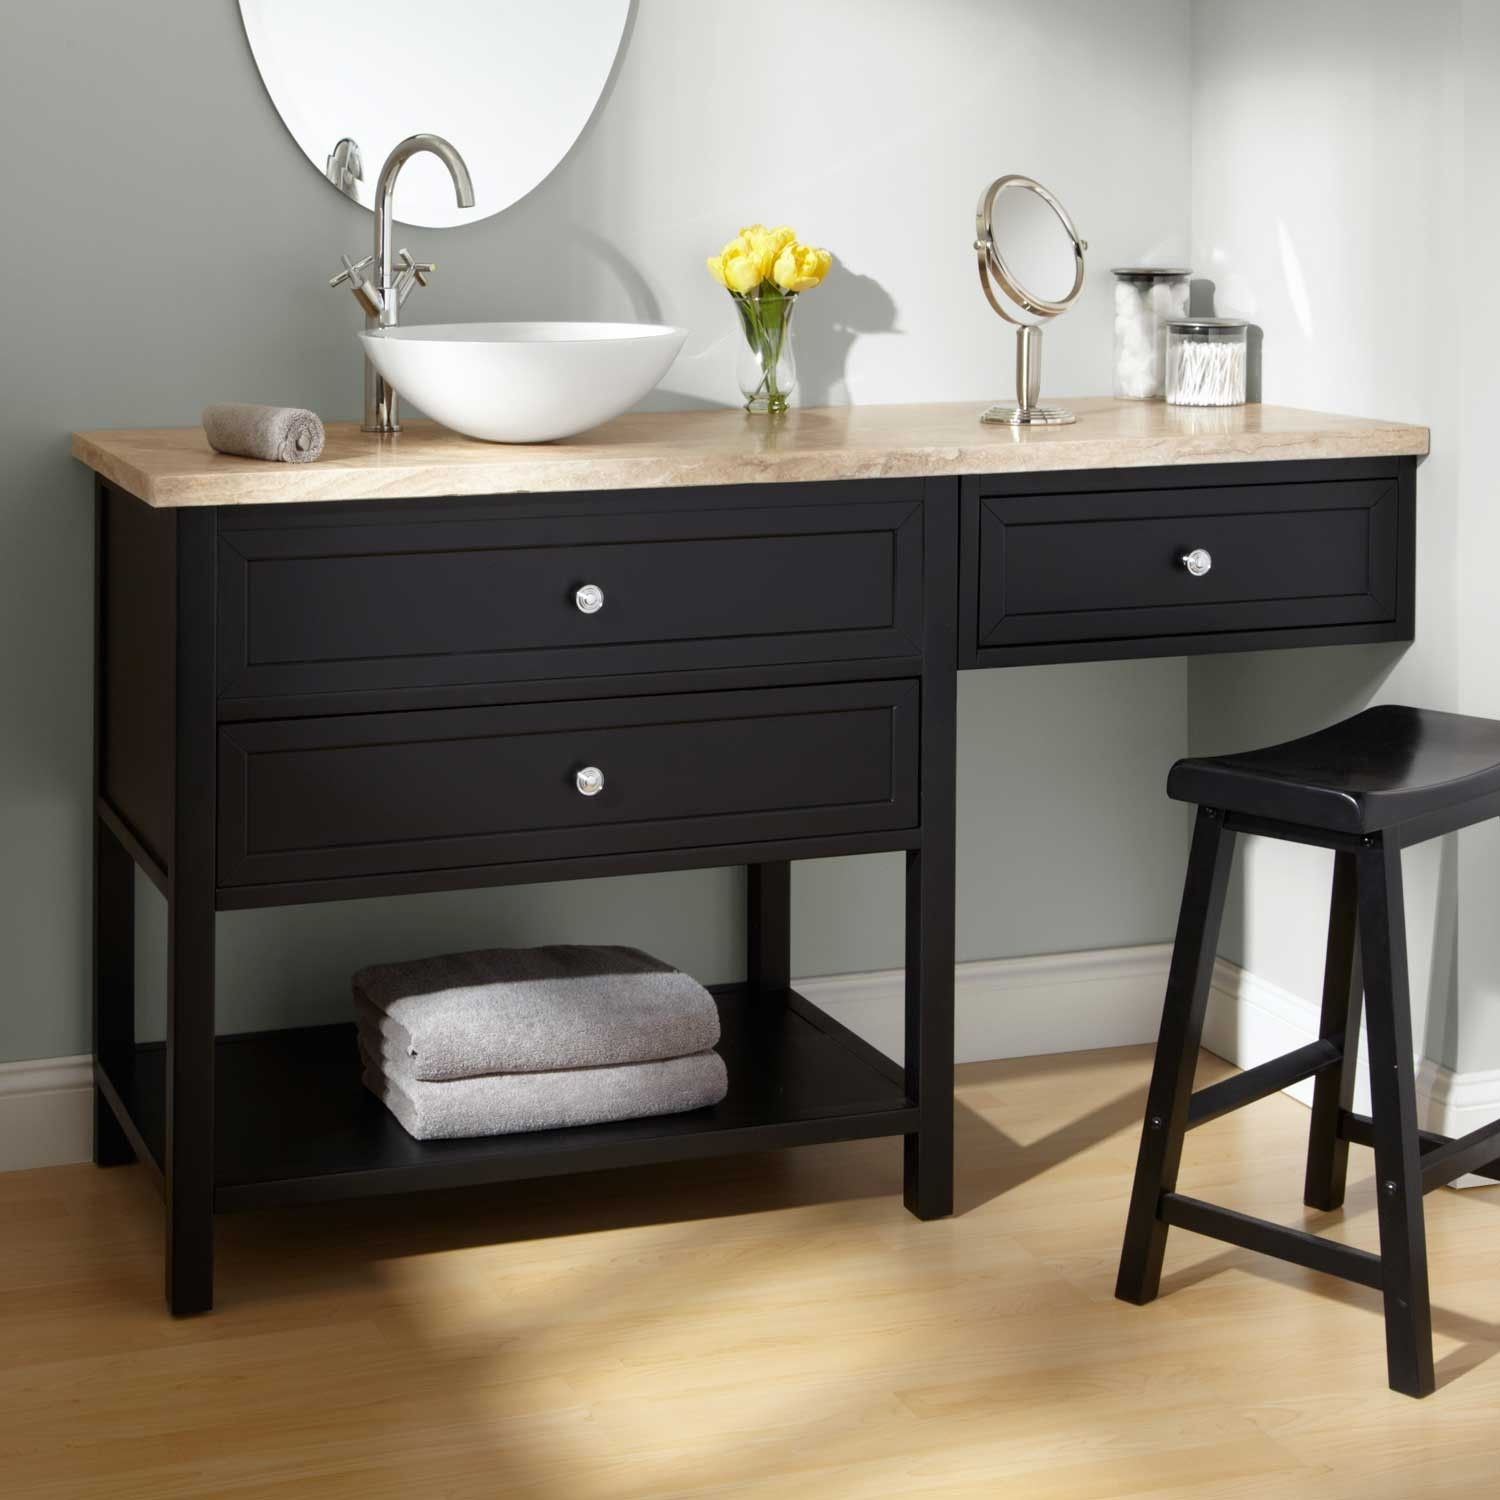 Bathroom Makeup Vanity And Chair Sink Vanities 60 Taren